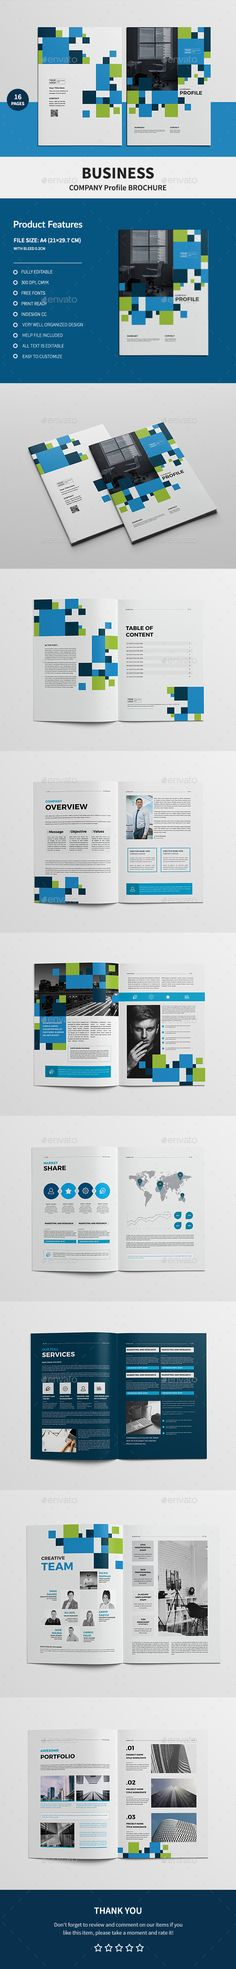 Company Profile 16 Pages 19770700 InDesign Template Pinterest